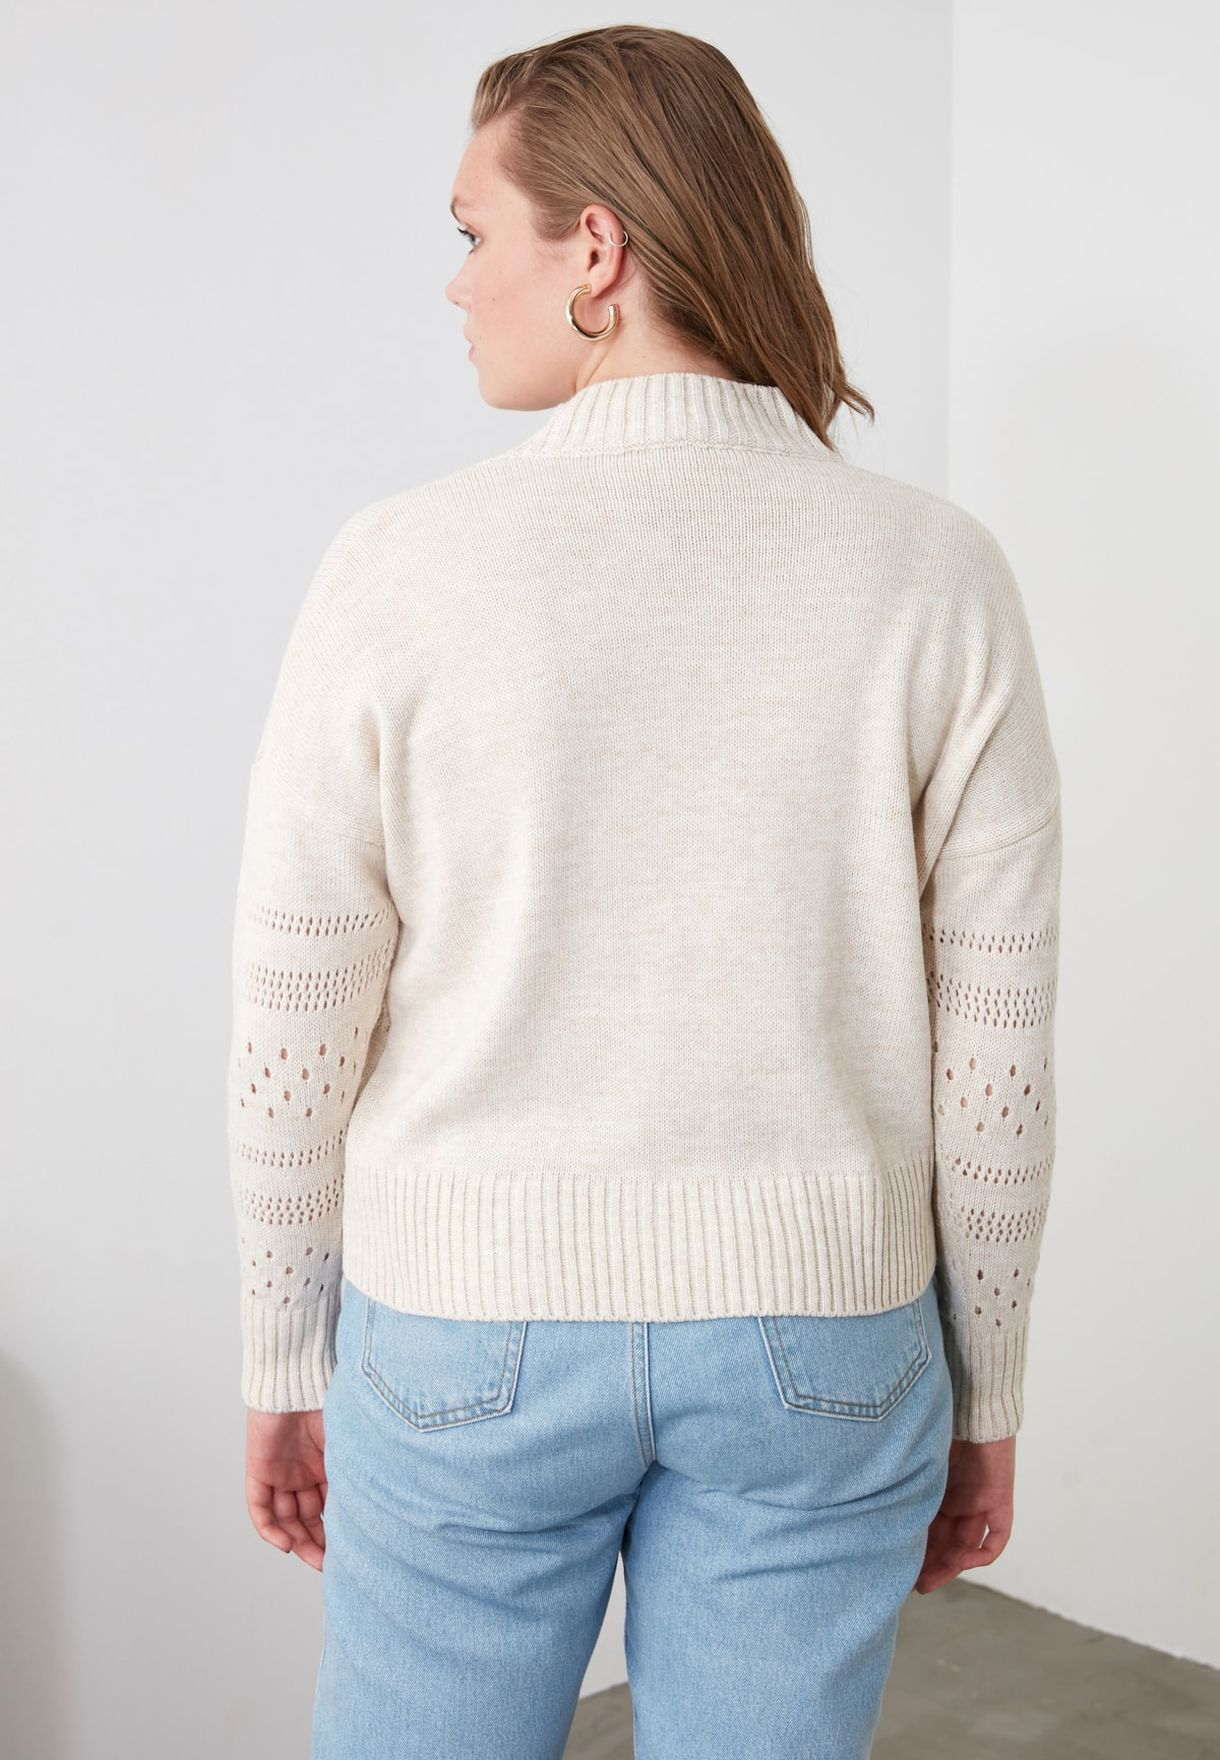 Openwork Knitted Sweater